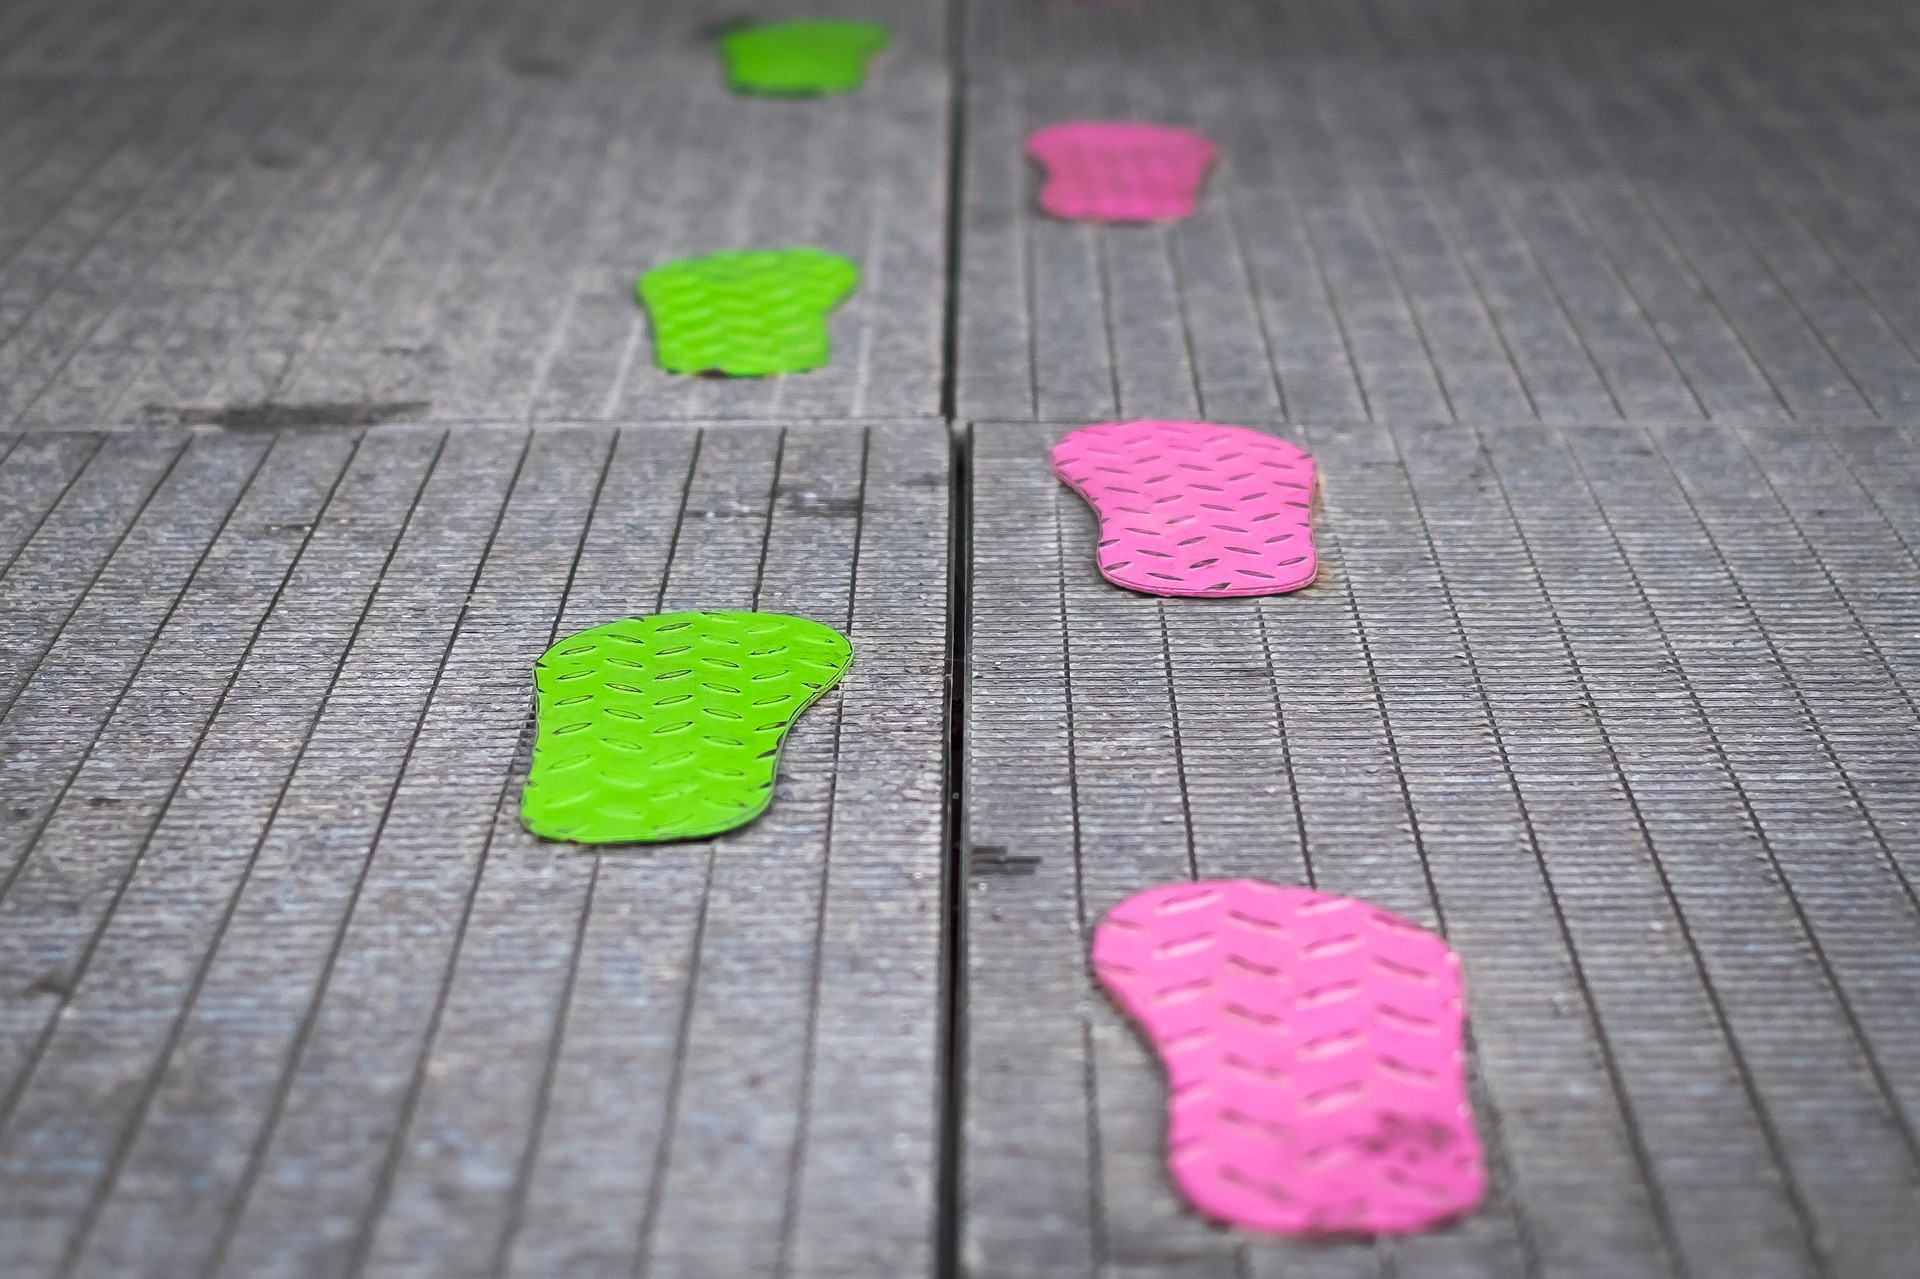 Image displays pink and green coloured footsteps depicting taking steps